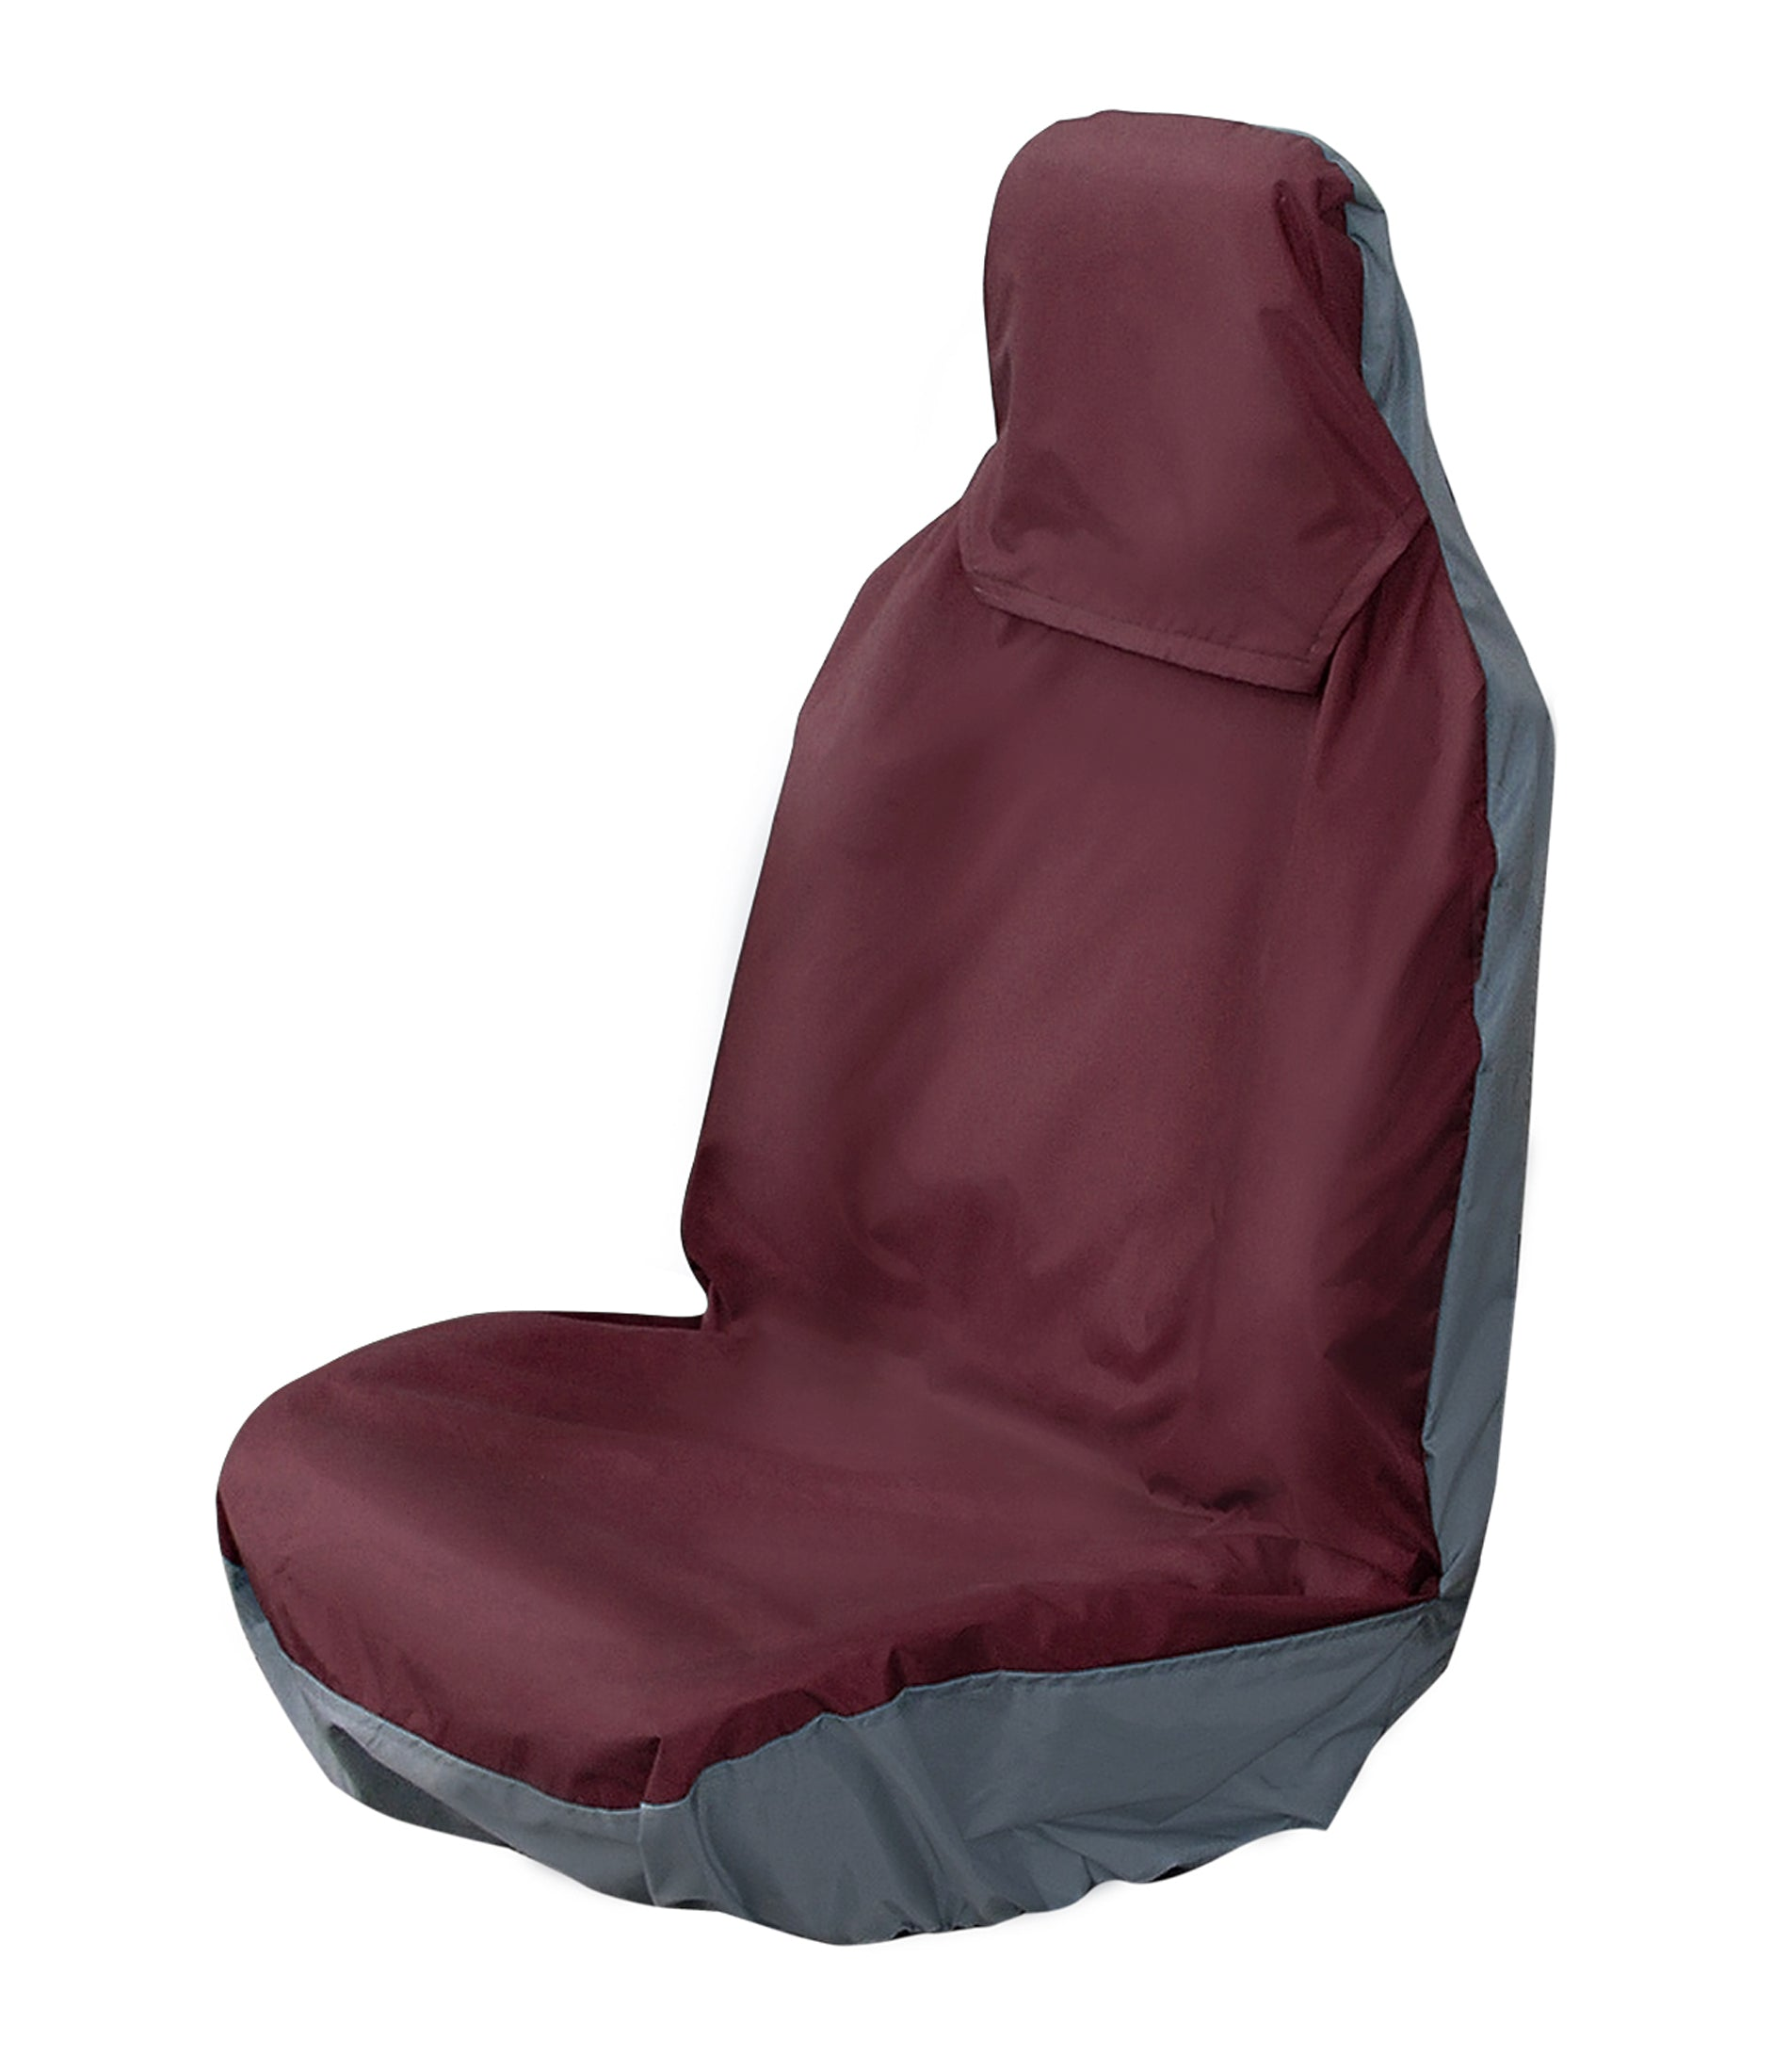 Land Rover Freelander (Old Style) Rear Seat Cover